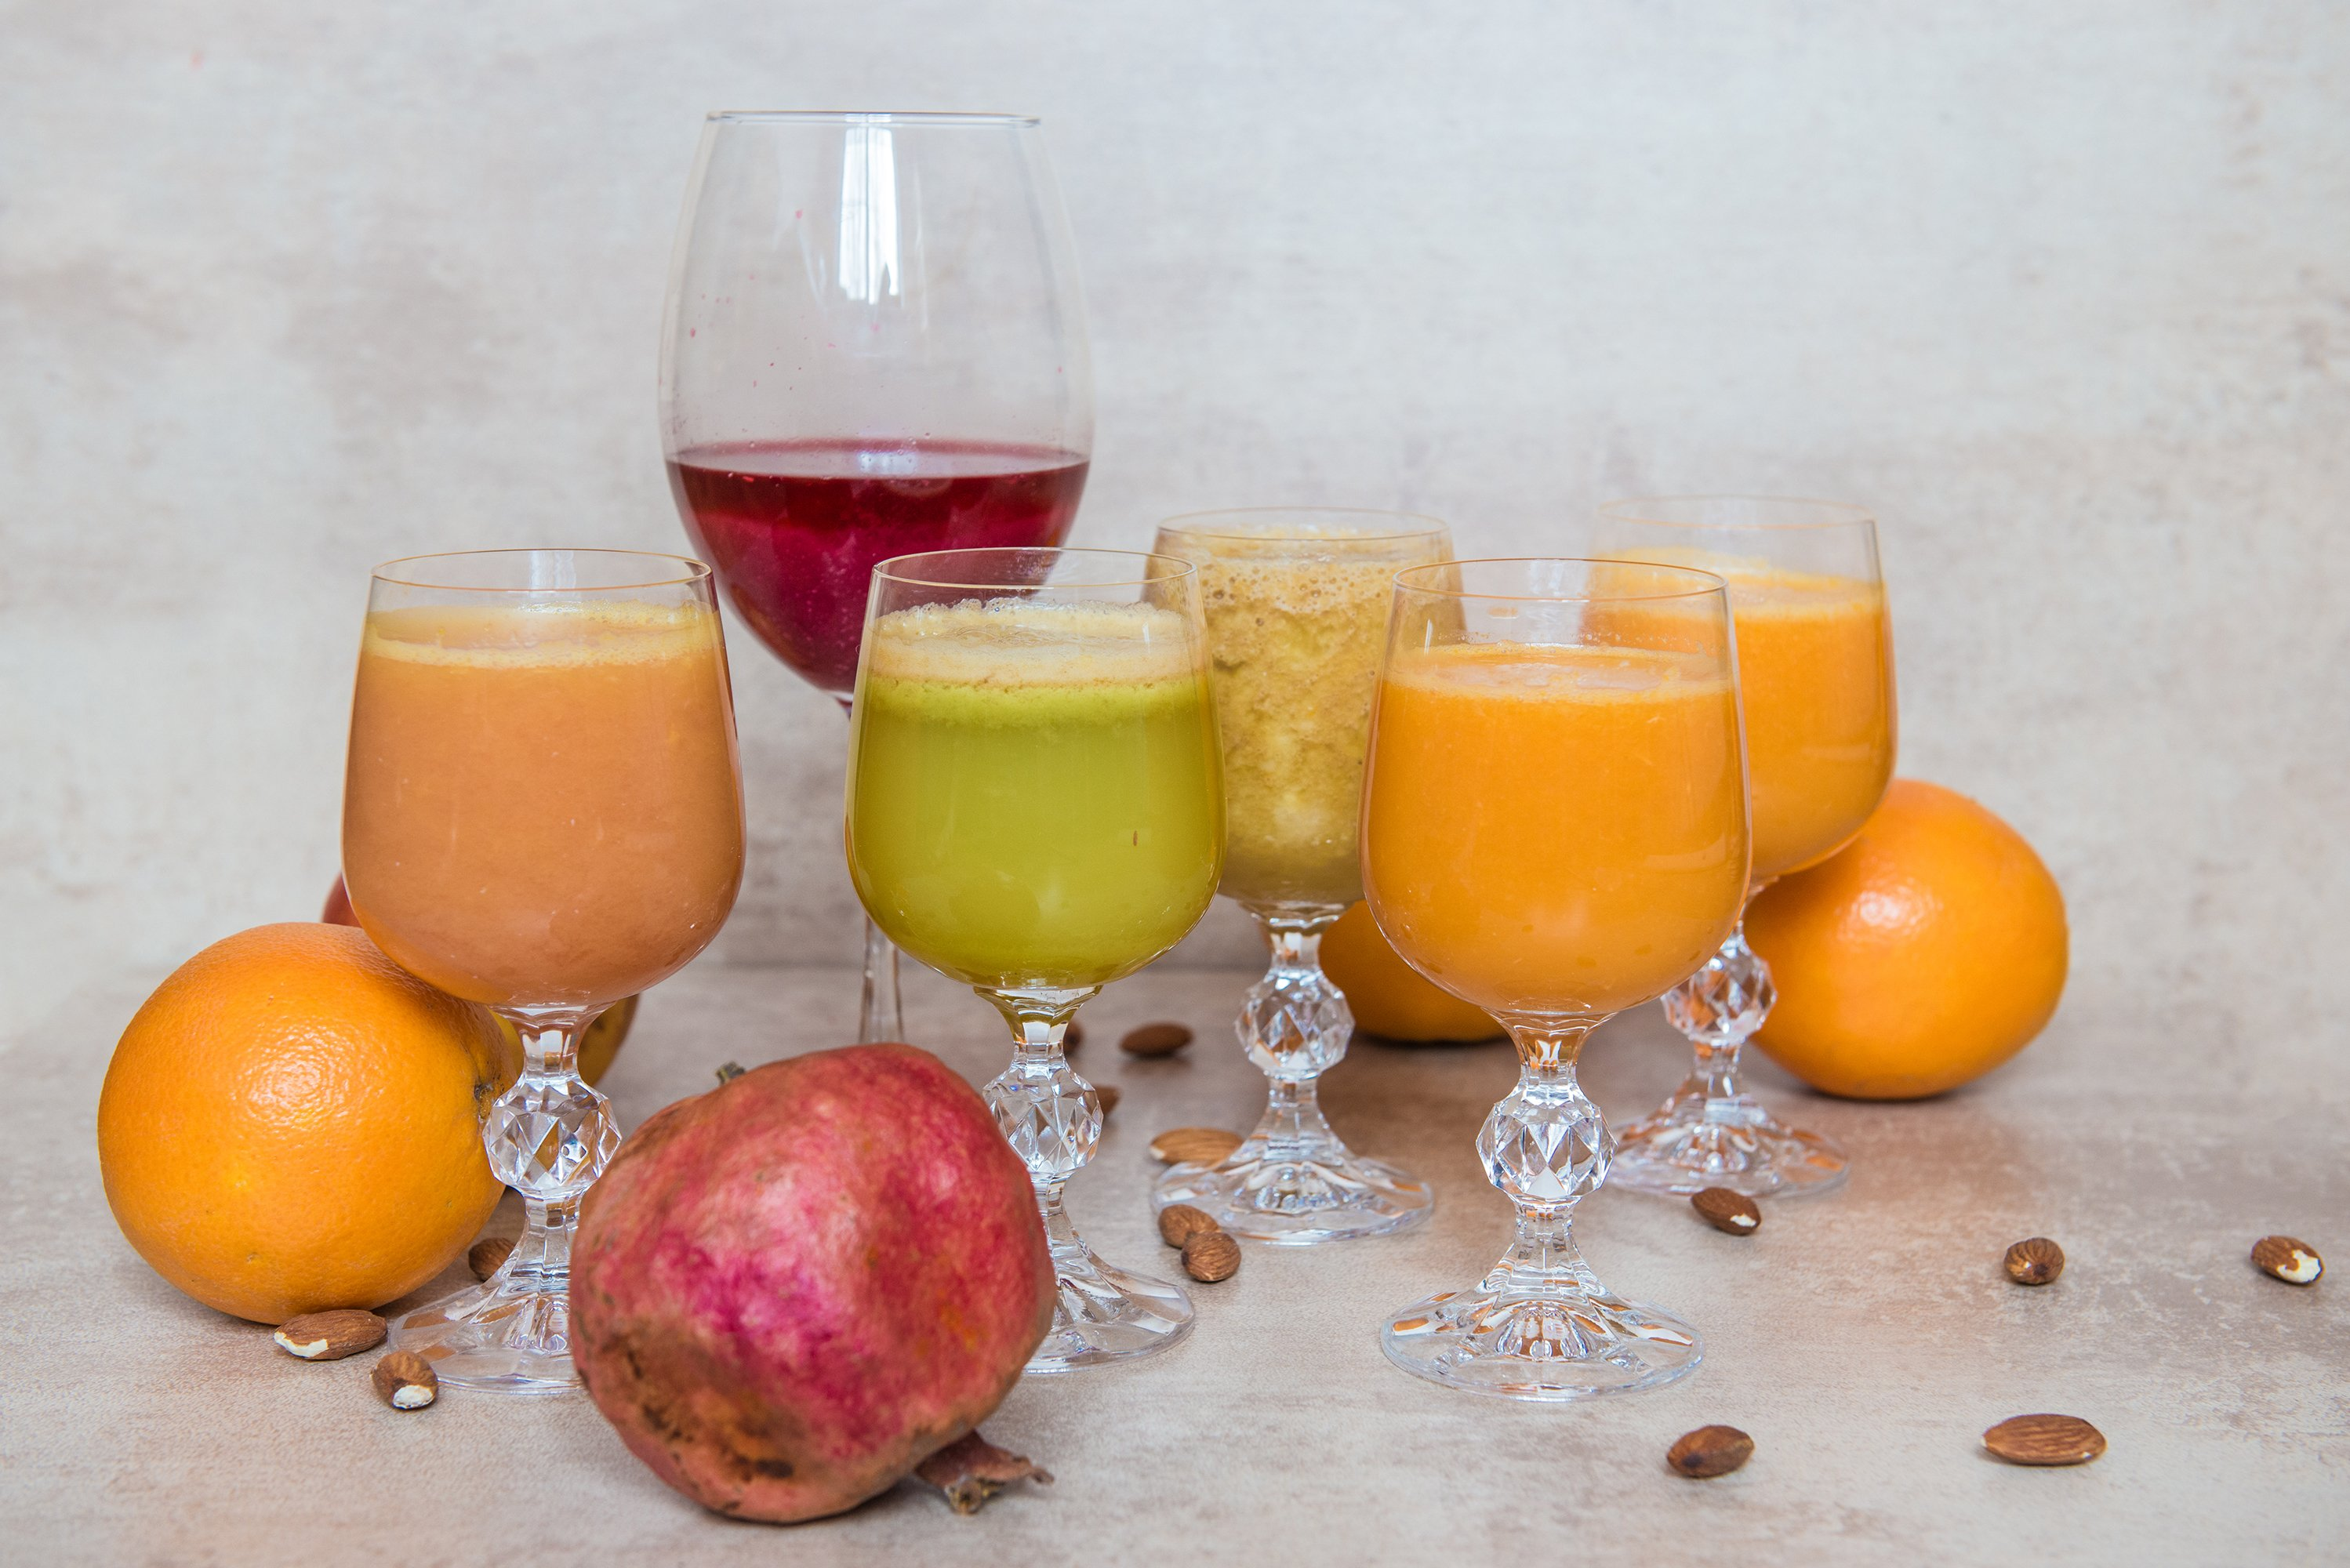 Fresh juice mix vegetables and fruit, healthy drinks example image 1